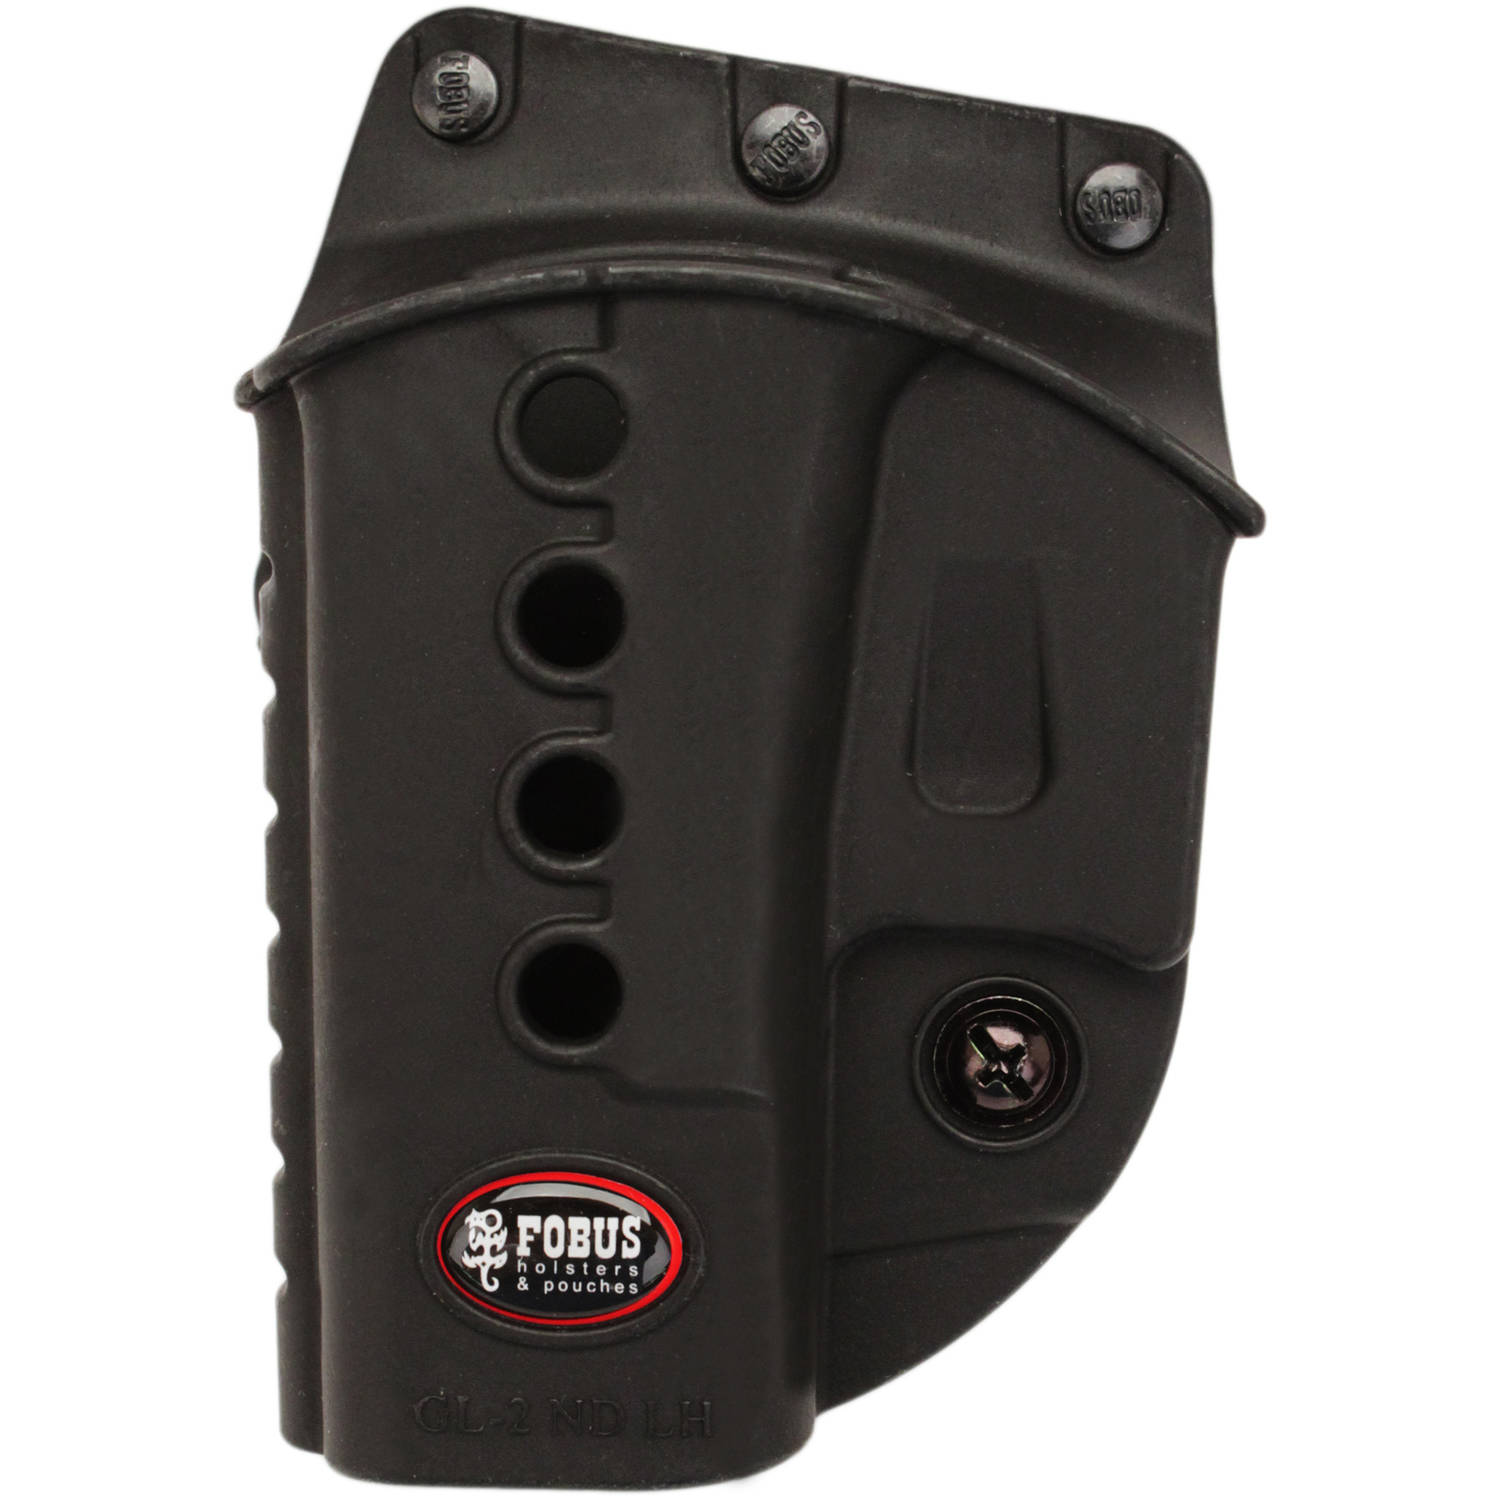 Fobus E2 Evolution Roto Belt Holster Glock 17, 19, 22, 23, 26, 27, 33, 34, 35, Walther PK380 Left Hand by Fobus